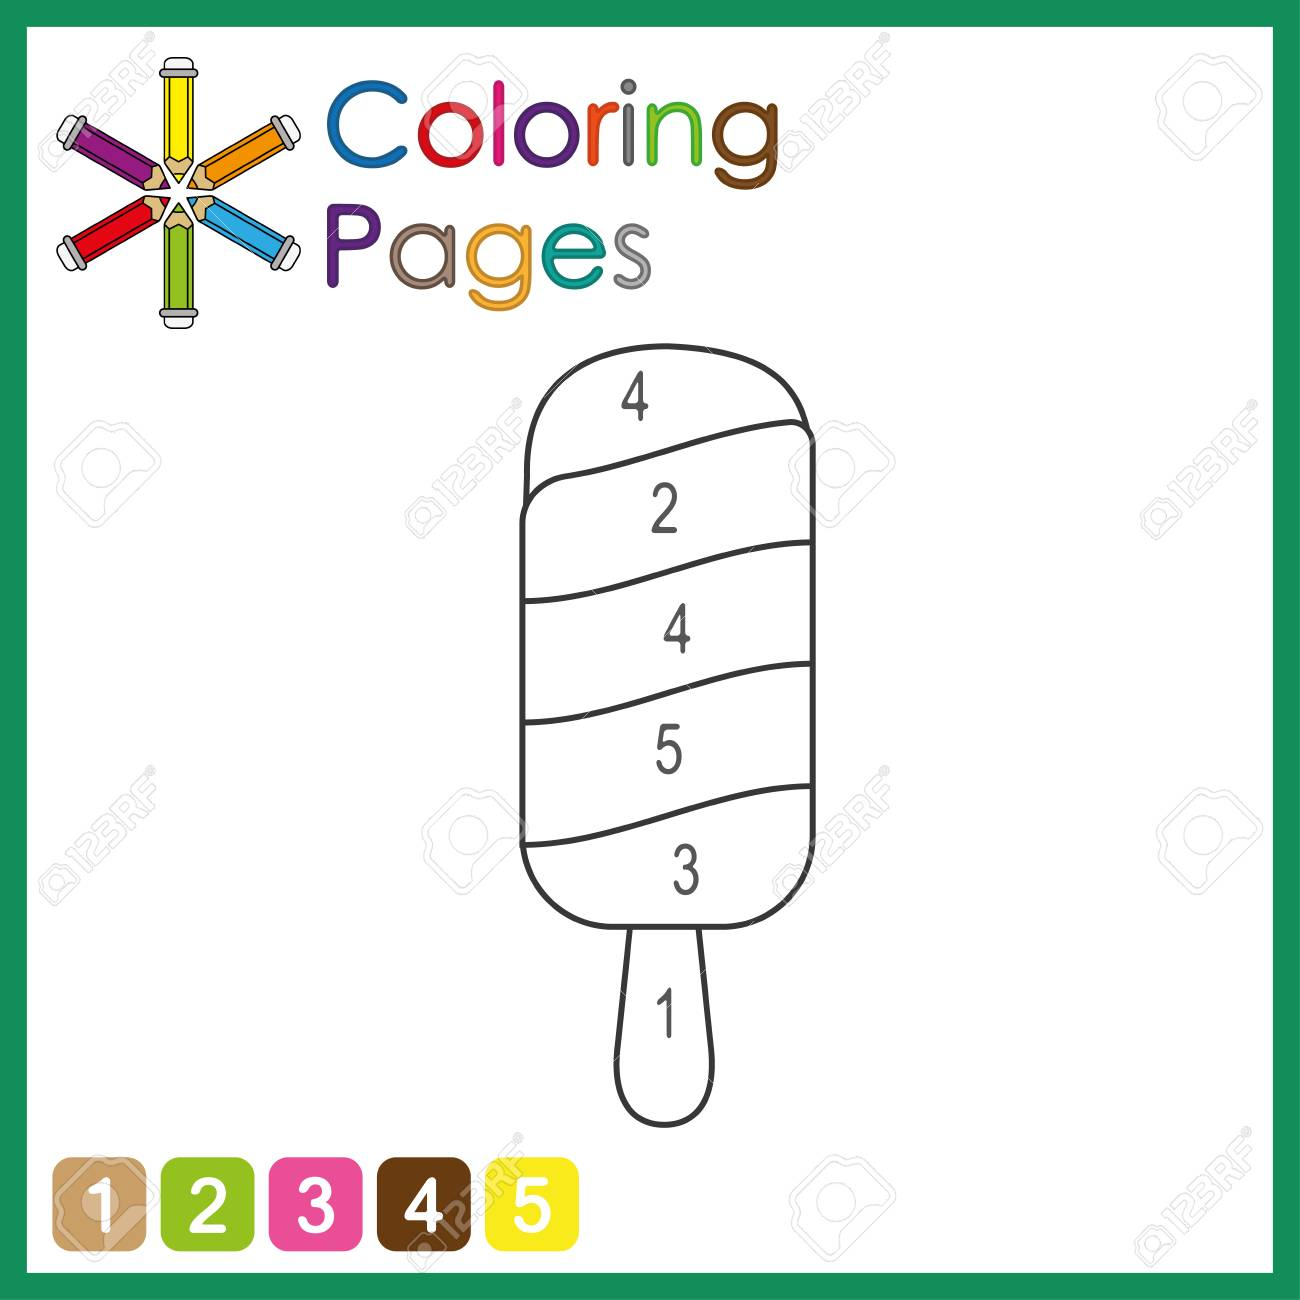 coloring page for kids, color the parts of the object according to numbers, color by numbers, activity pages - 122858948